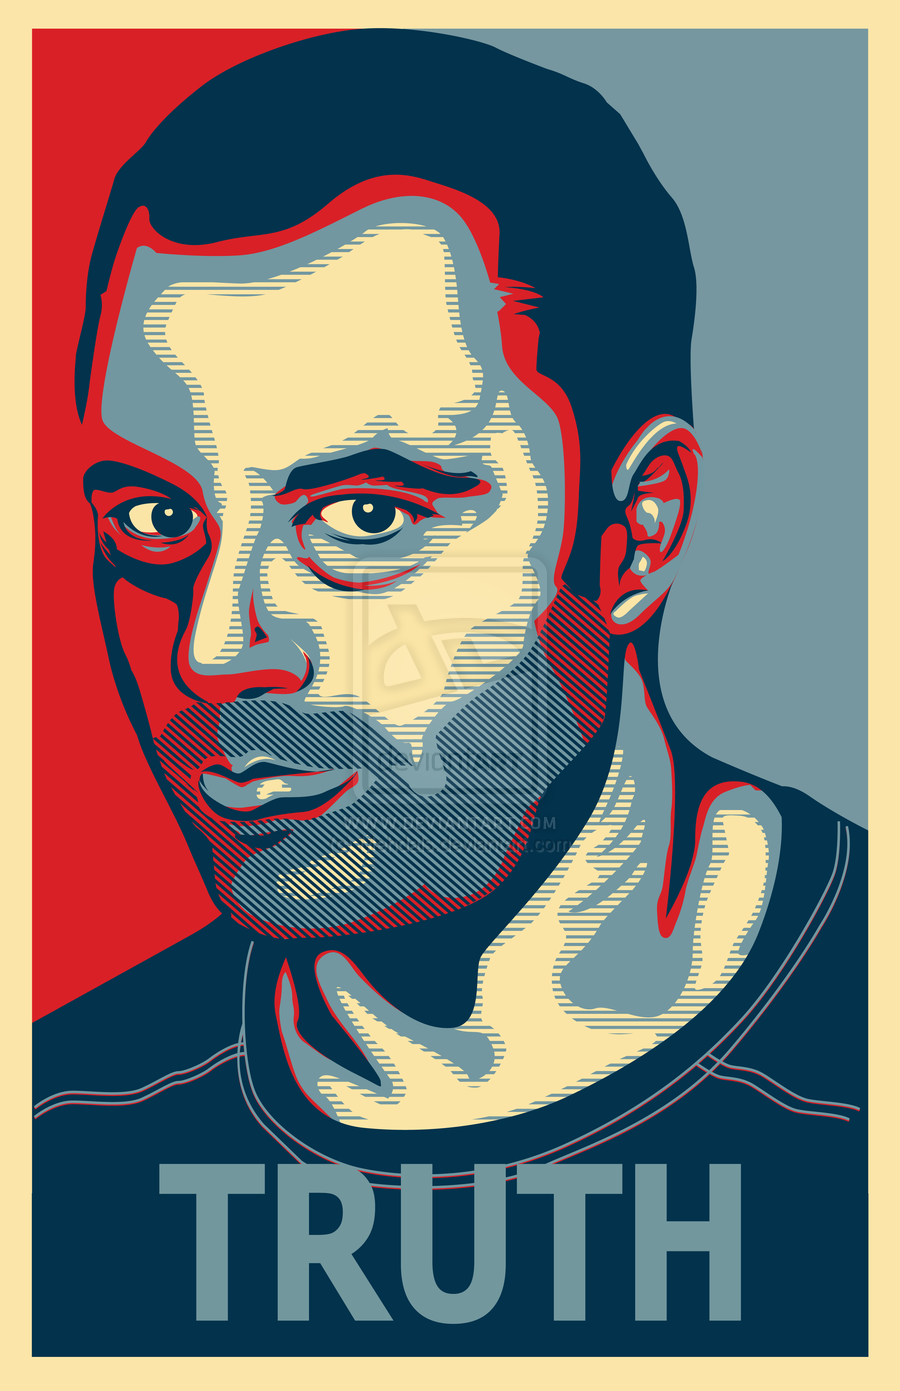 Joe Rogan Poster By Mehdals On Deviantart Joe Rogan Joe Rogan Experience Poster